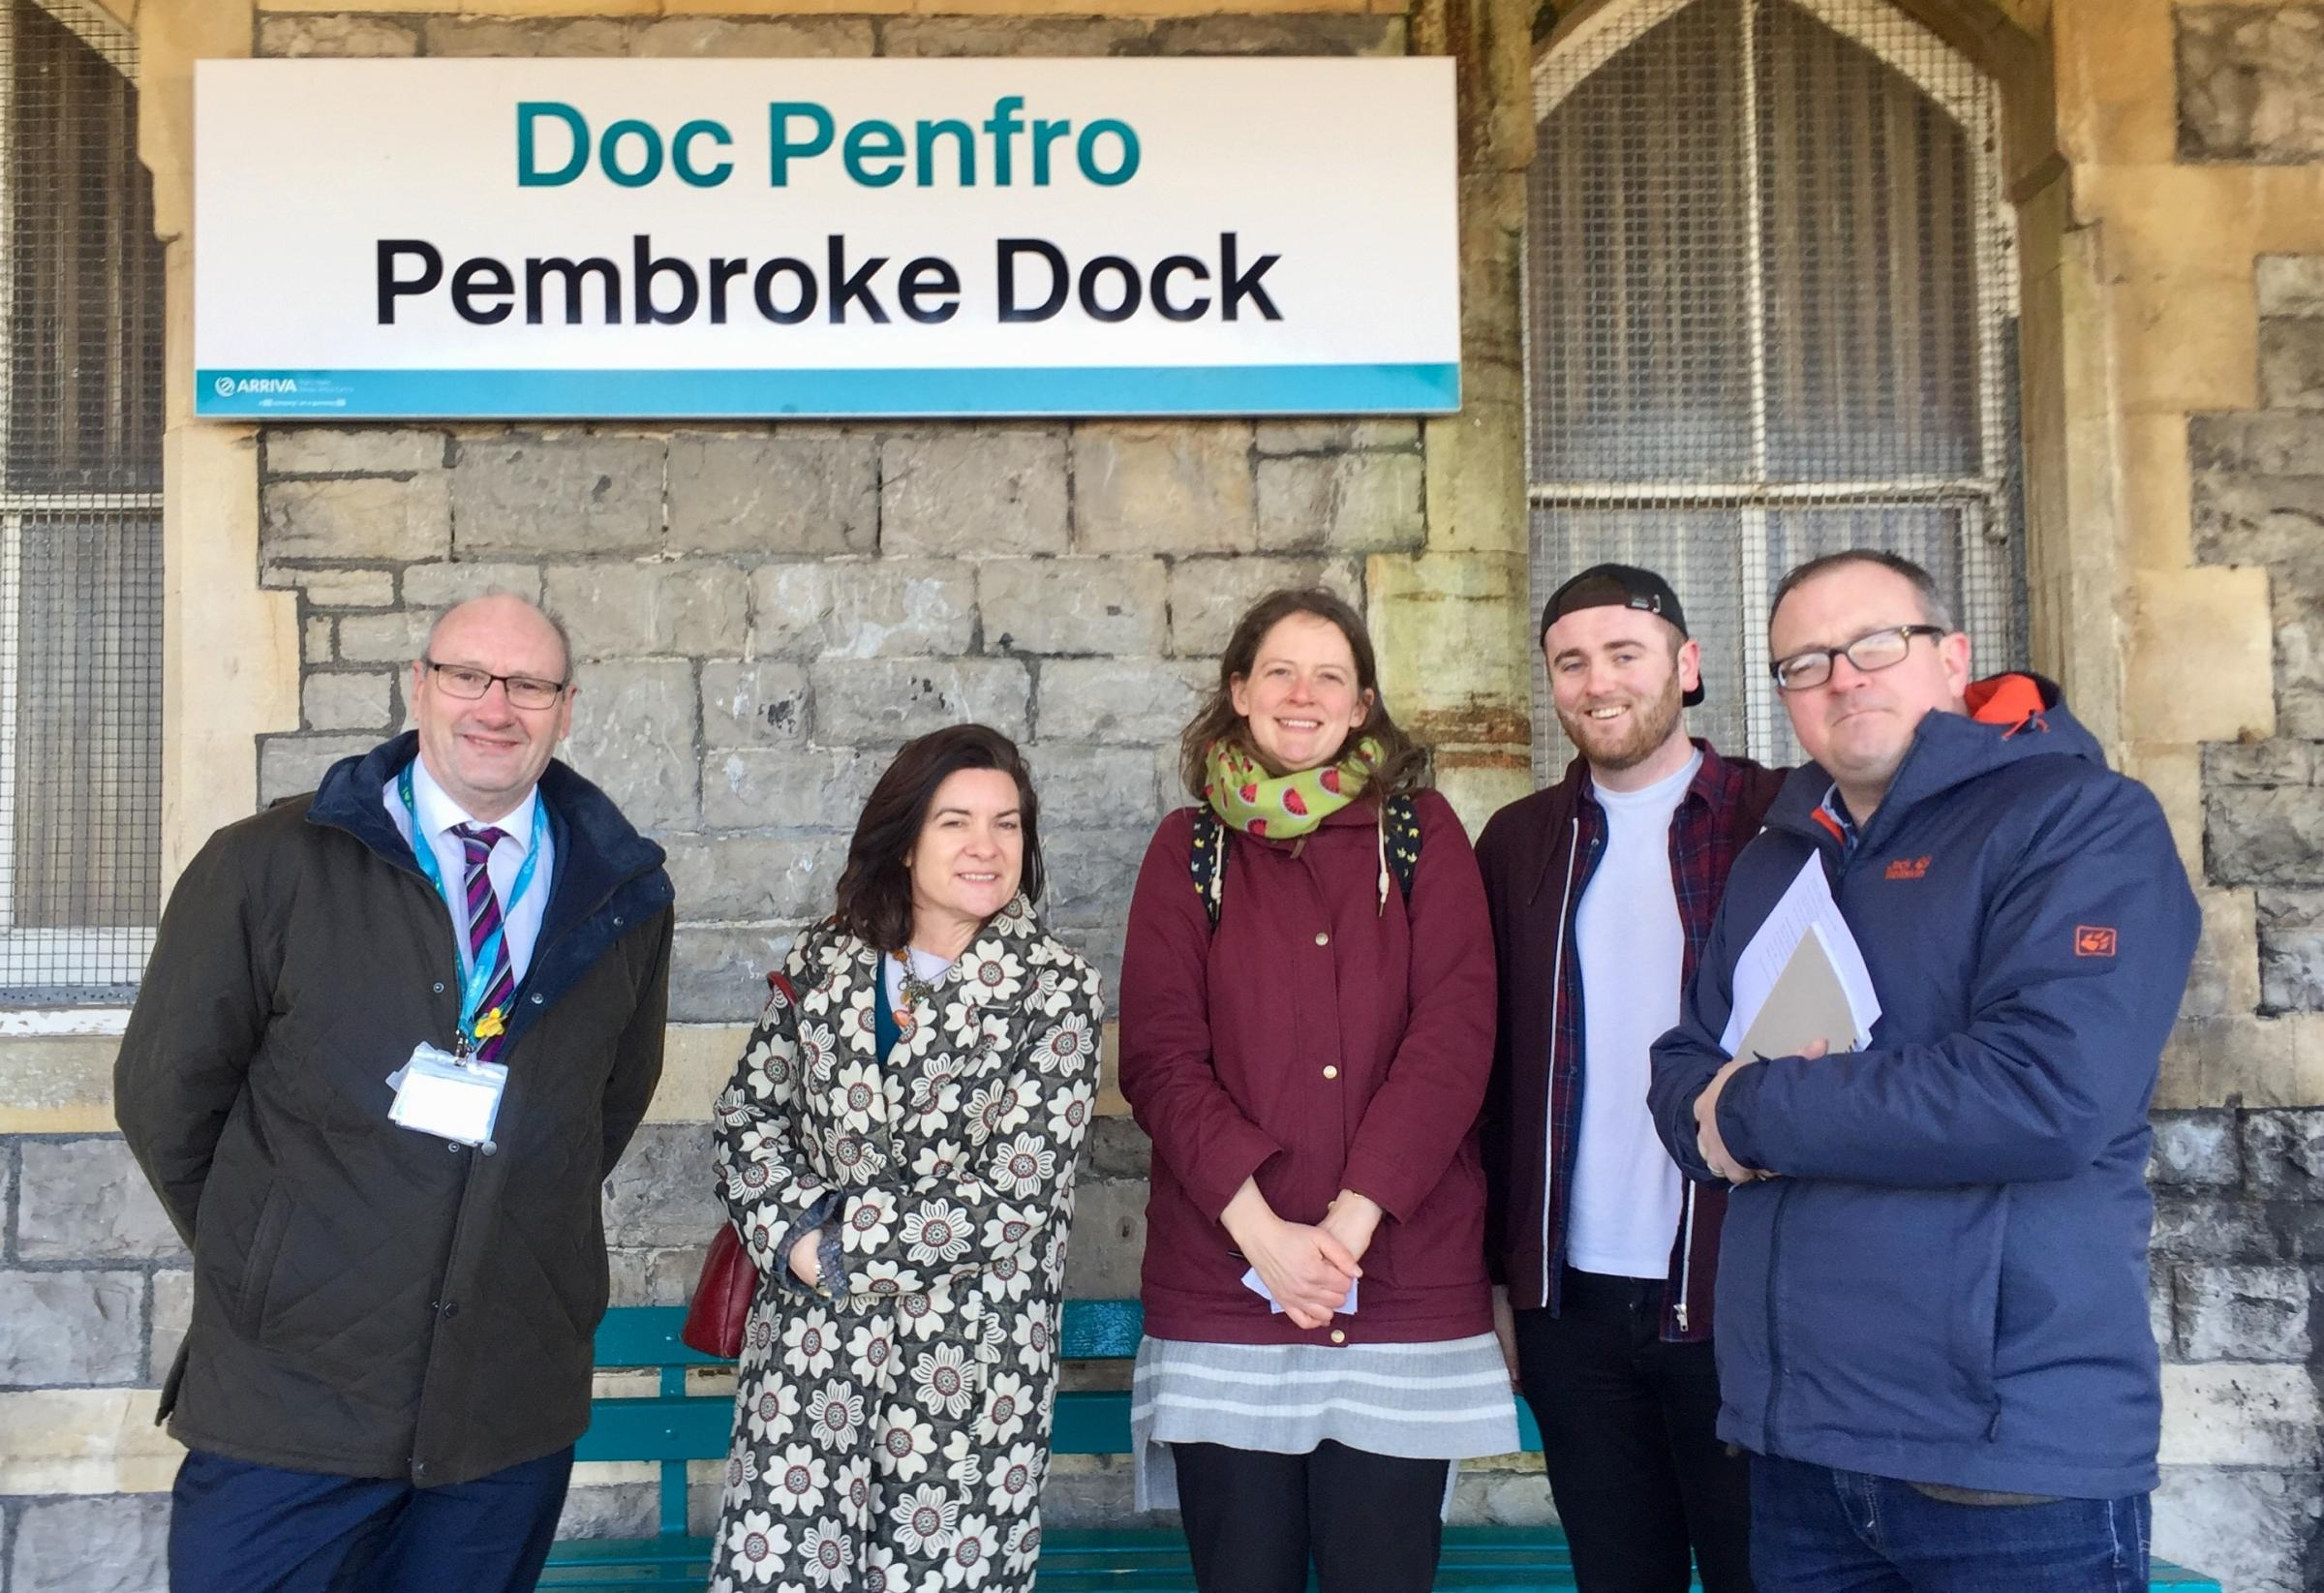 Arriva Trains Wales Manager Ben Davies is pictured with with Labour AM Eluned Morgan, Town Councillor Dilys Burrell, County Councillor Josh Beynon and Community campaigner, Marc Tierney at Pembroke Dock Railway Station.